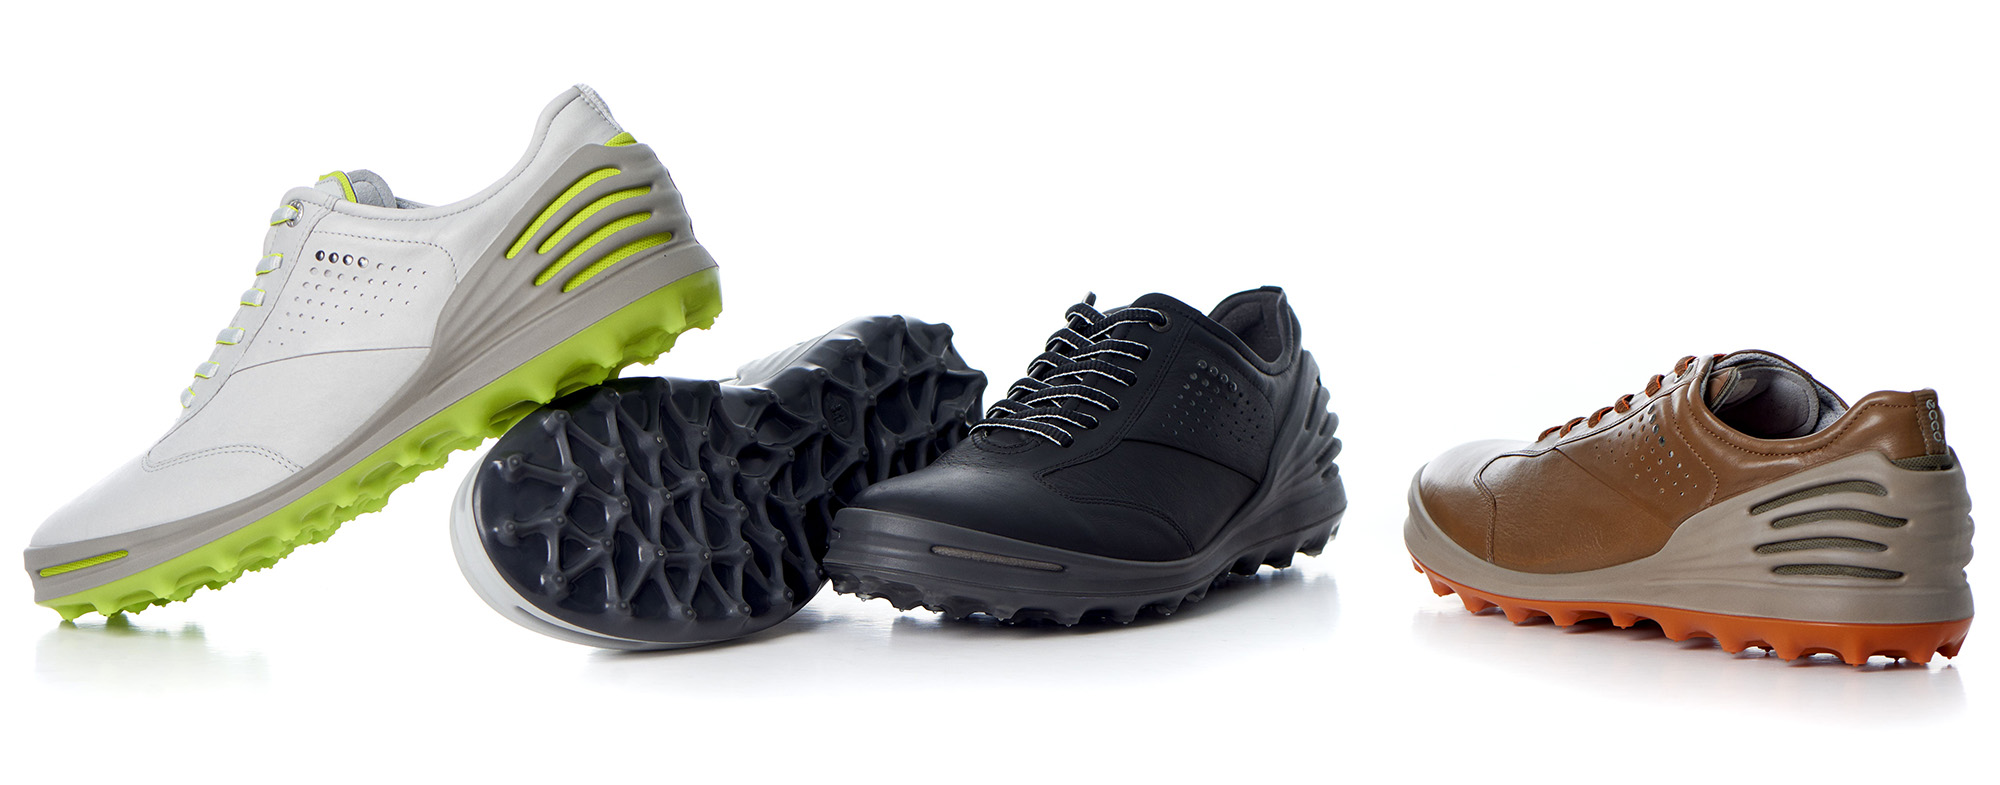 ecco-golf-cage-pro-group